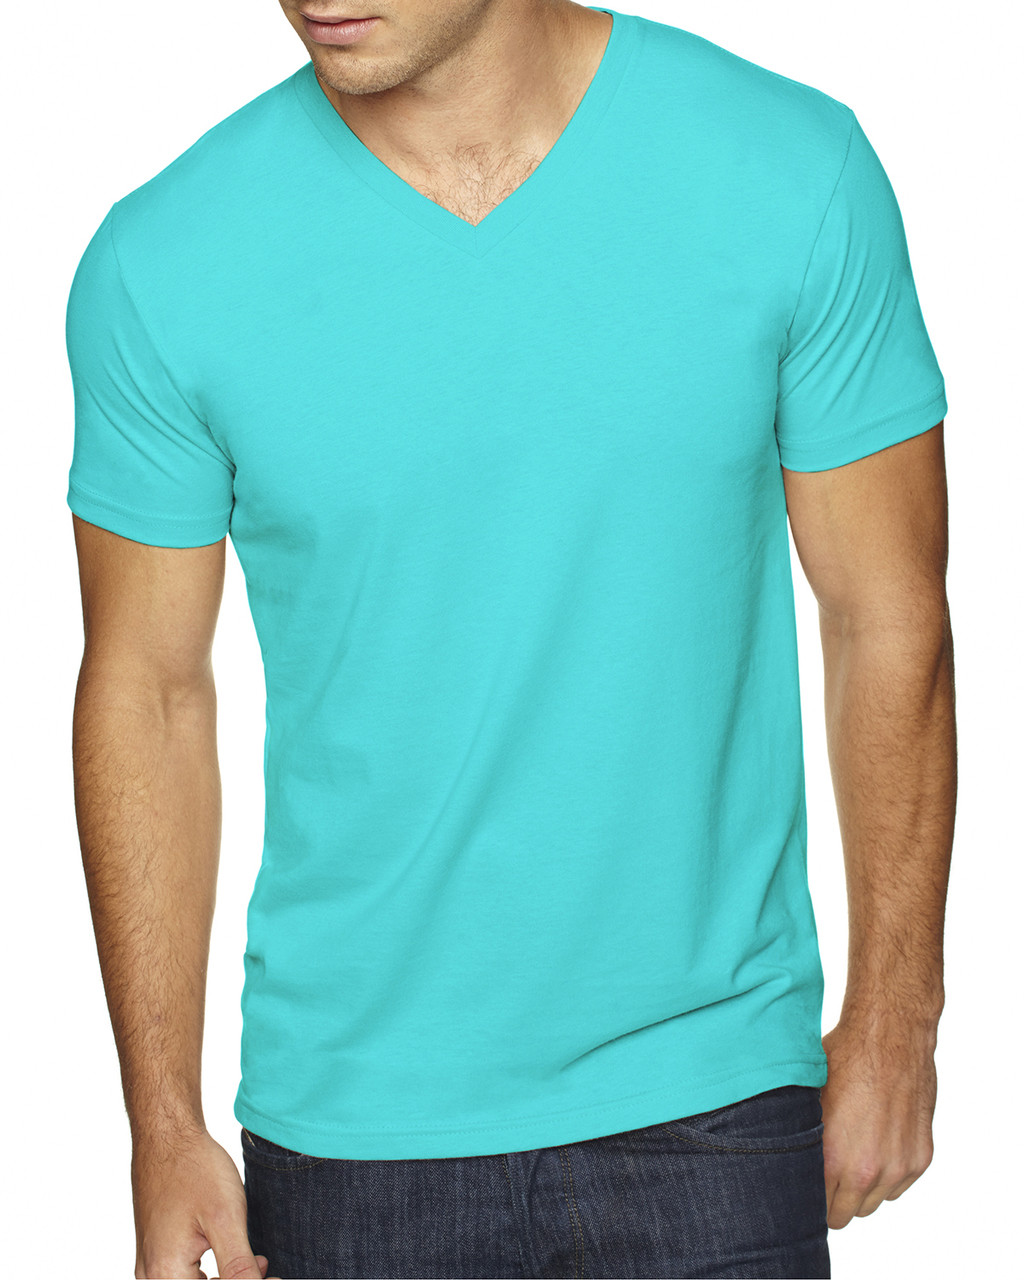 Tahiti Blue - 6440 Next Level Men's Premium Fitted Sueded V-Neck Tee | Blankclothing.ca